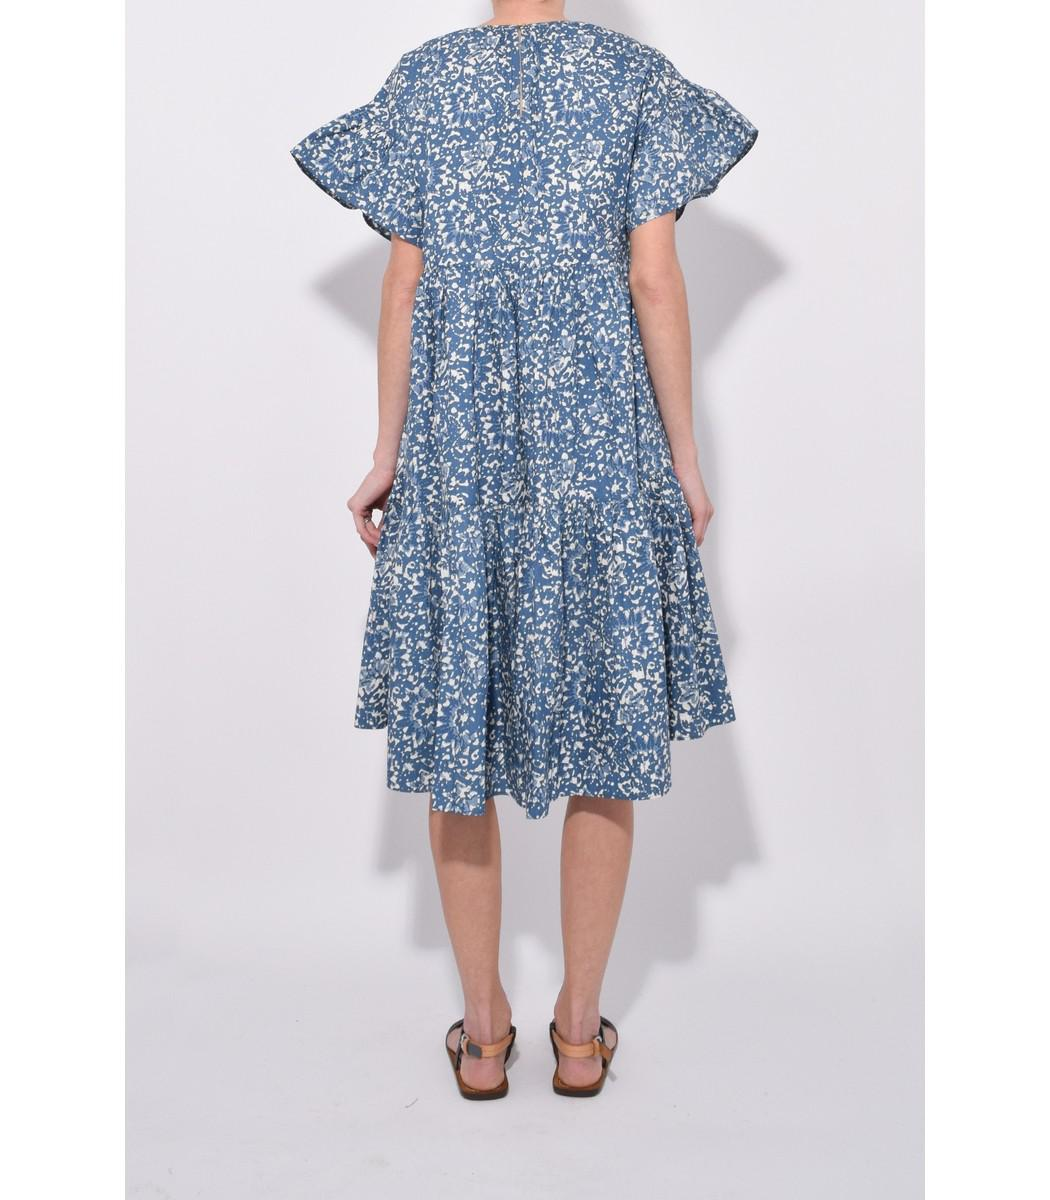 f7aedee4cf2 Ulla Johnson Rosemarie Dress In Indigo Batik in Blue - Lyst